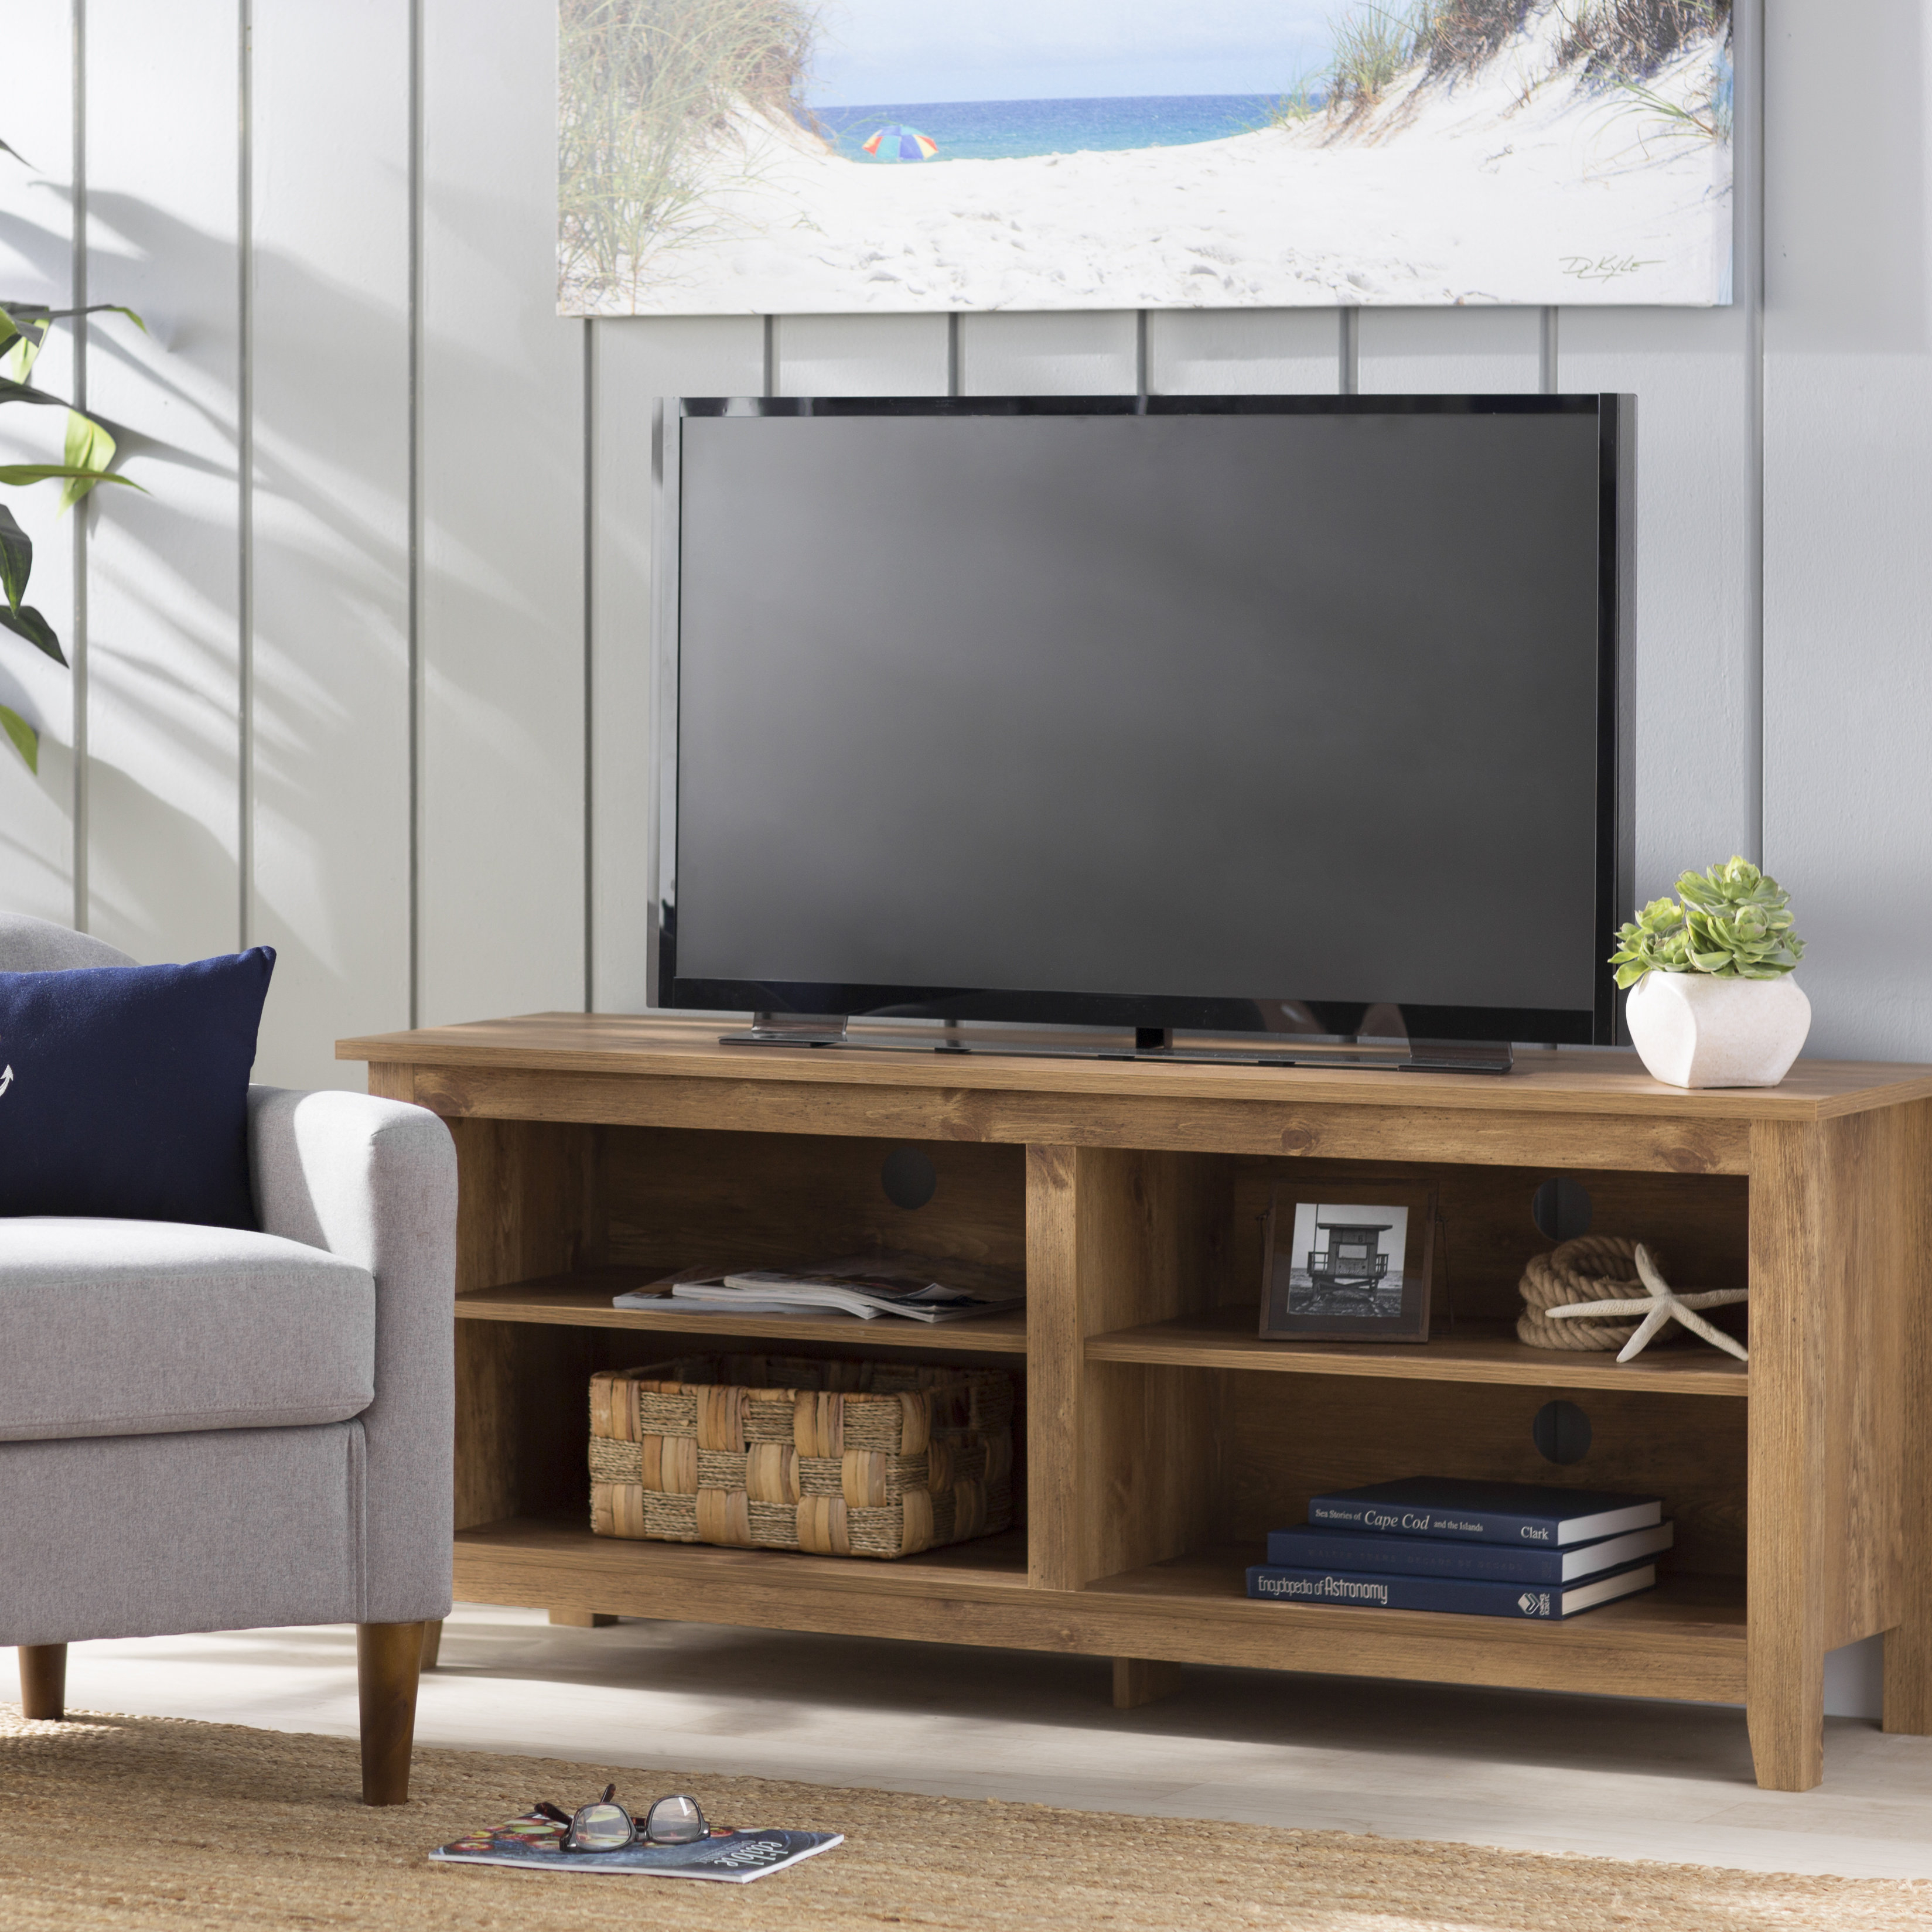 Tv Stands & Entertainment Centers You'll Love | Wayfair intended for Sinclair Blue 74 Inch Tv Stands (Image 29 of 30)